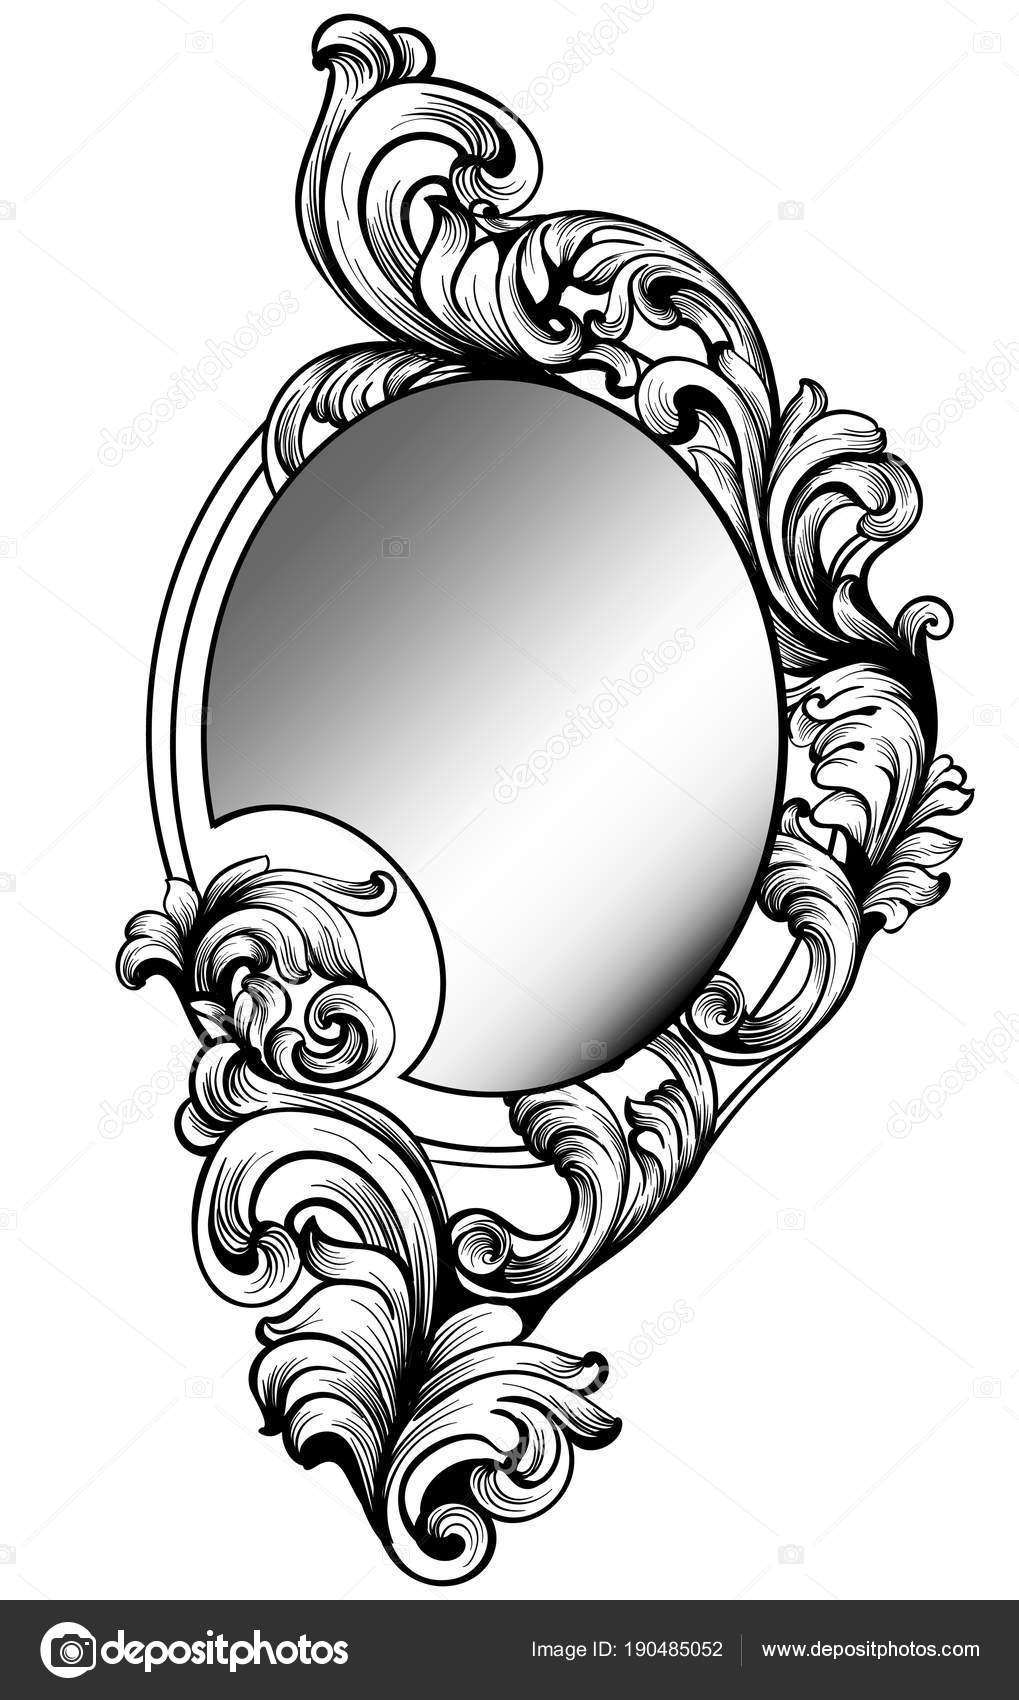 Baroque Mirror Frame Vector Imperial Decor Design Elements Rich Encarved Ornaments Line Art By Inagraur Ymail Com